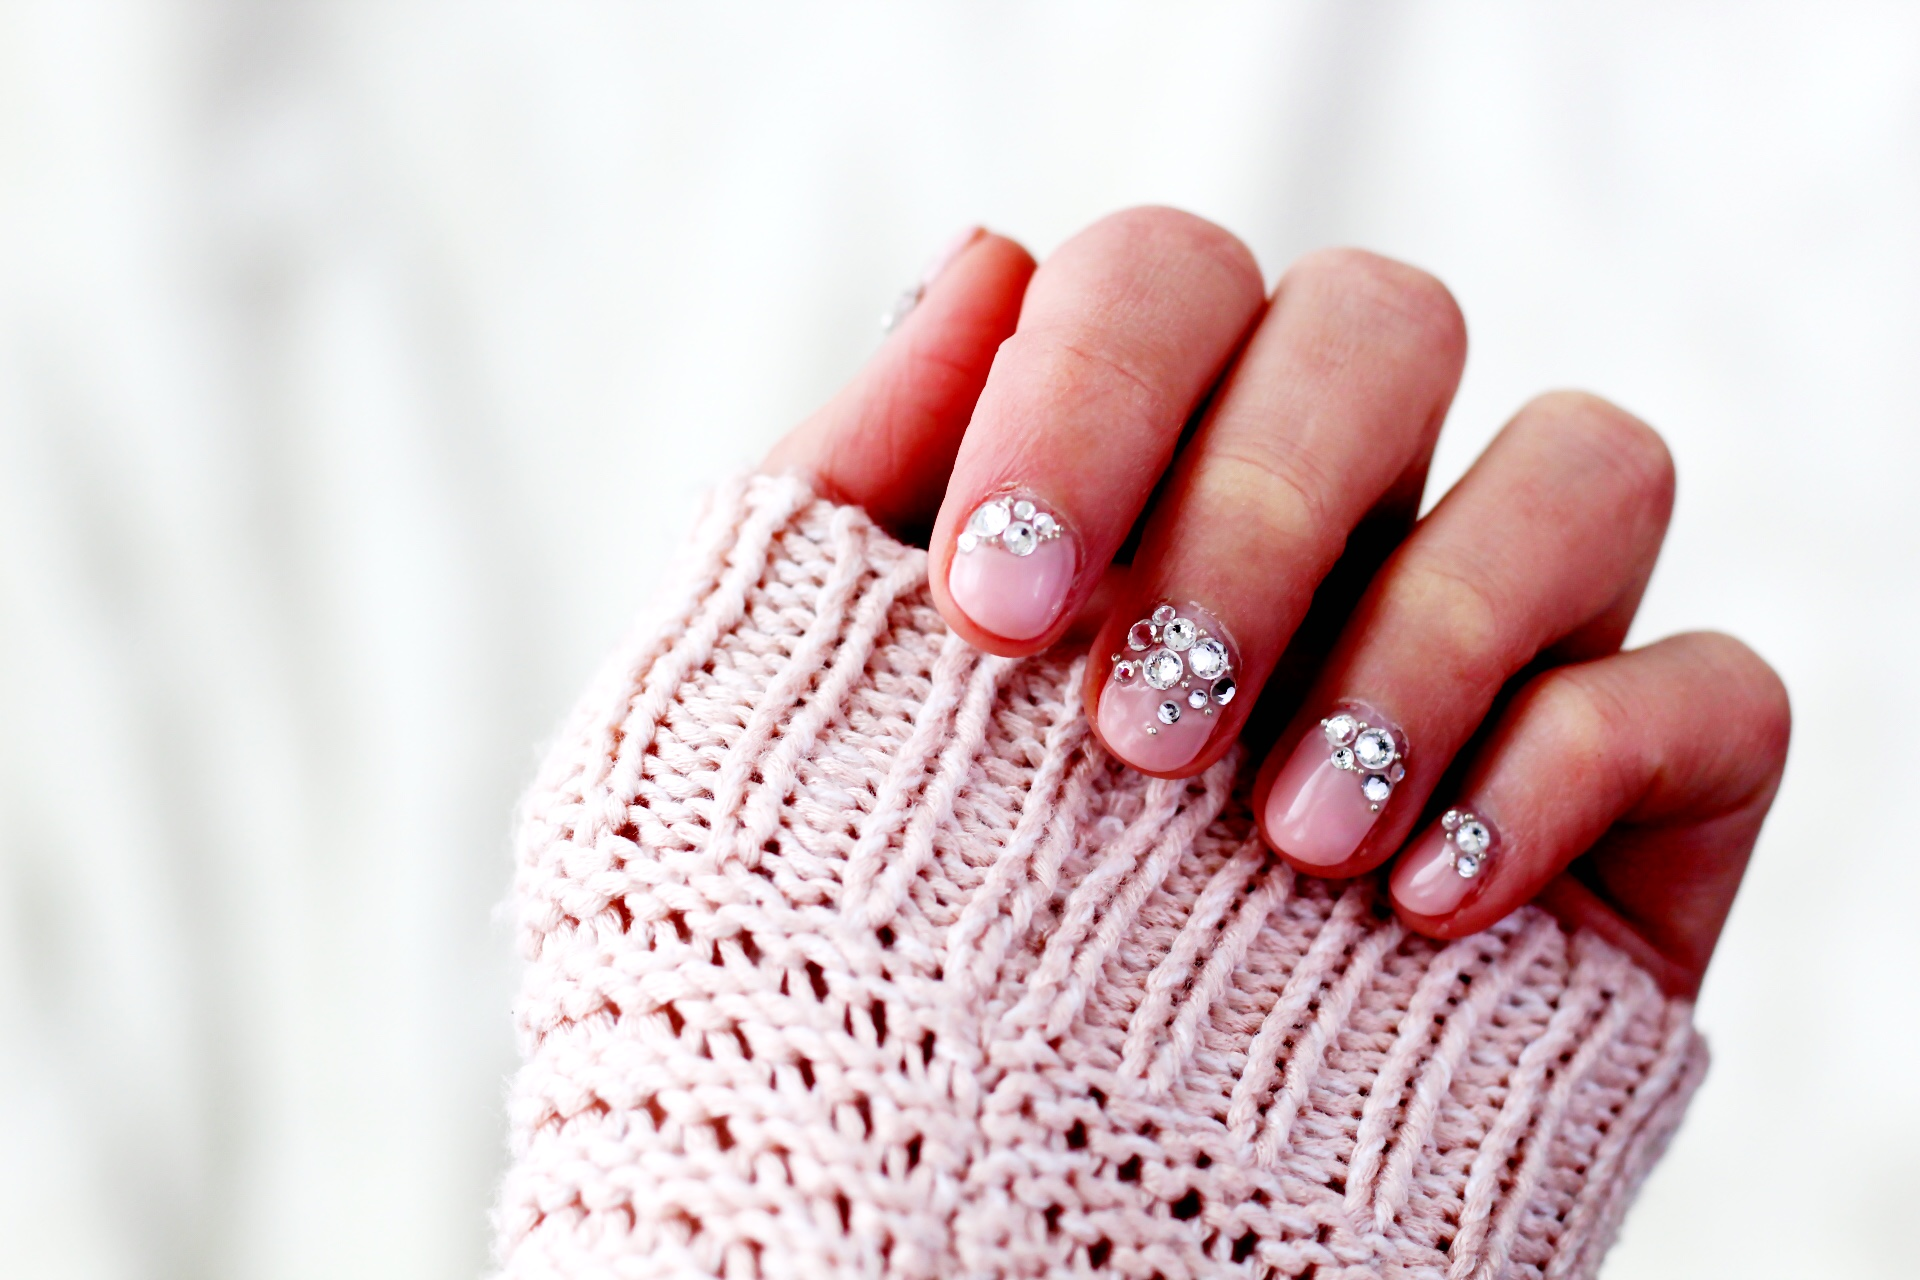 Final result! Beautiful sparkly nails!